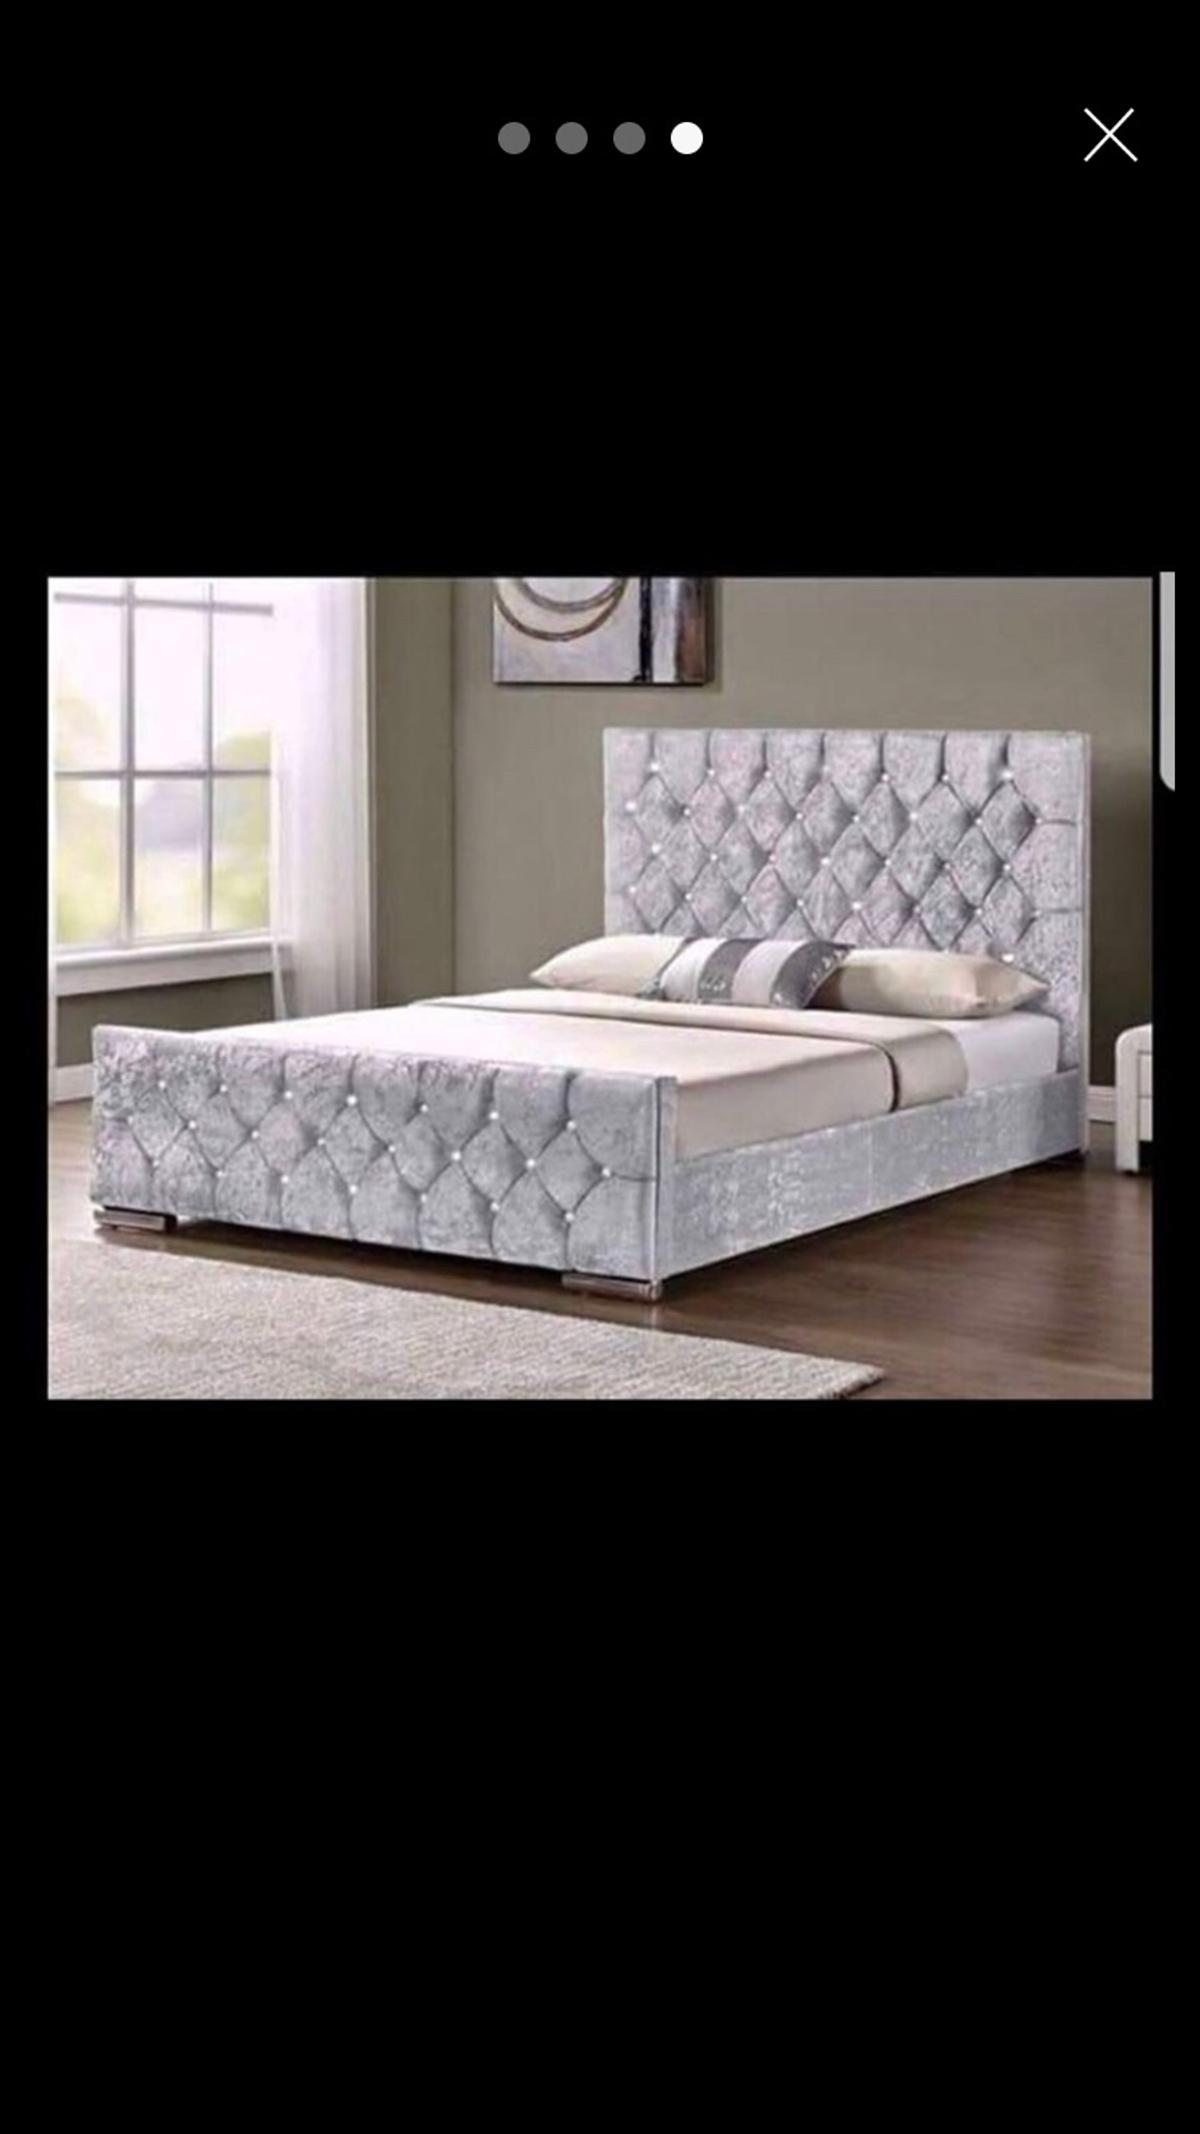 Picture of: Single Ottoman Bed Monaco In London For 220 00 For Sale Shpock